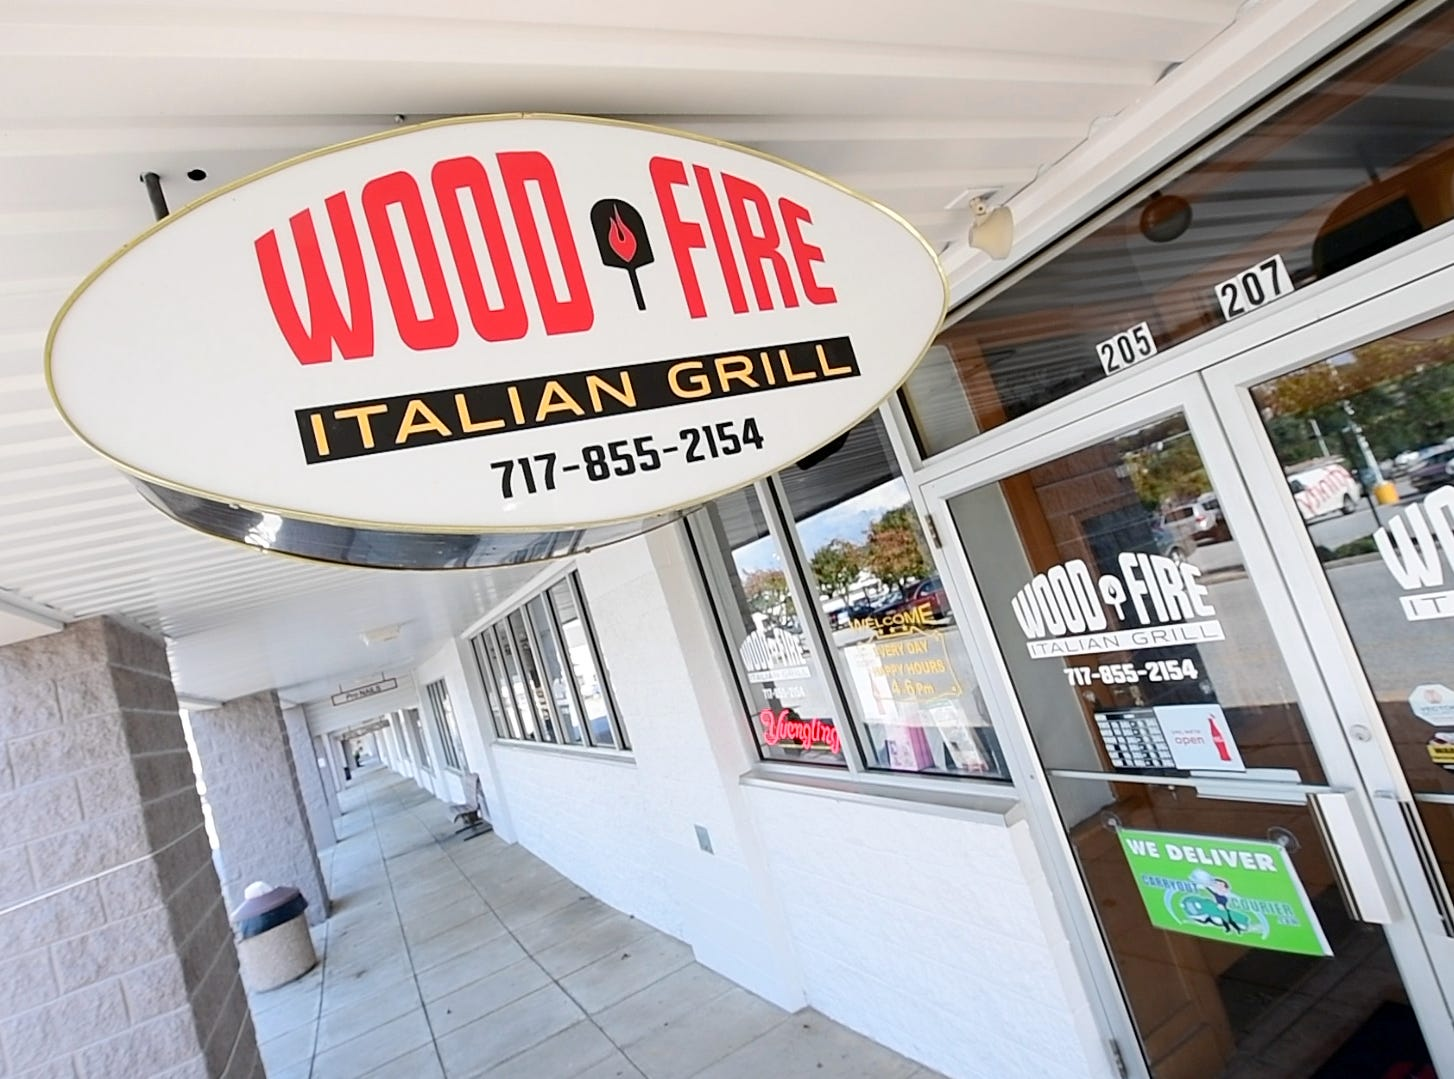 Wood Fire Italian Grill, on Pauline Drive, which opened at the beginning of this year, has added on a bar, where they make their own wine to serve.